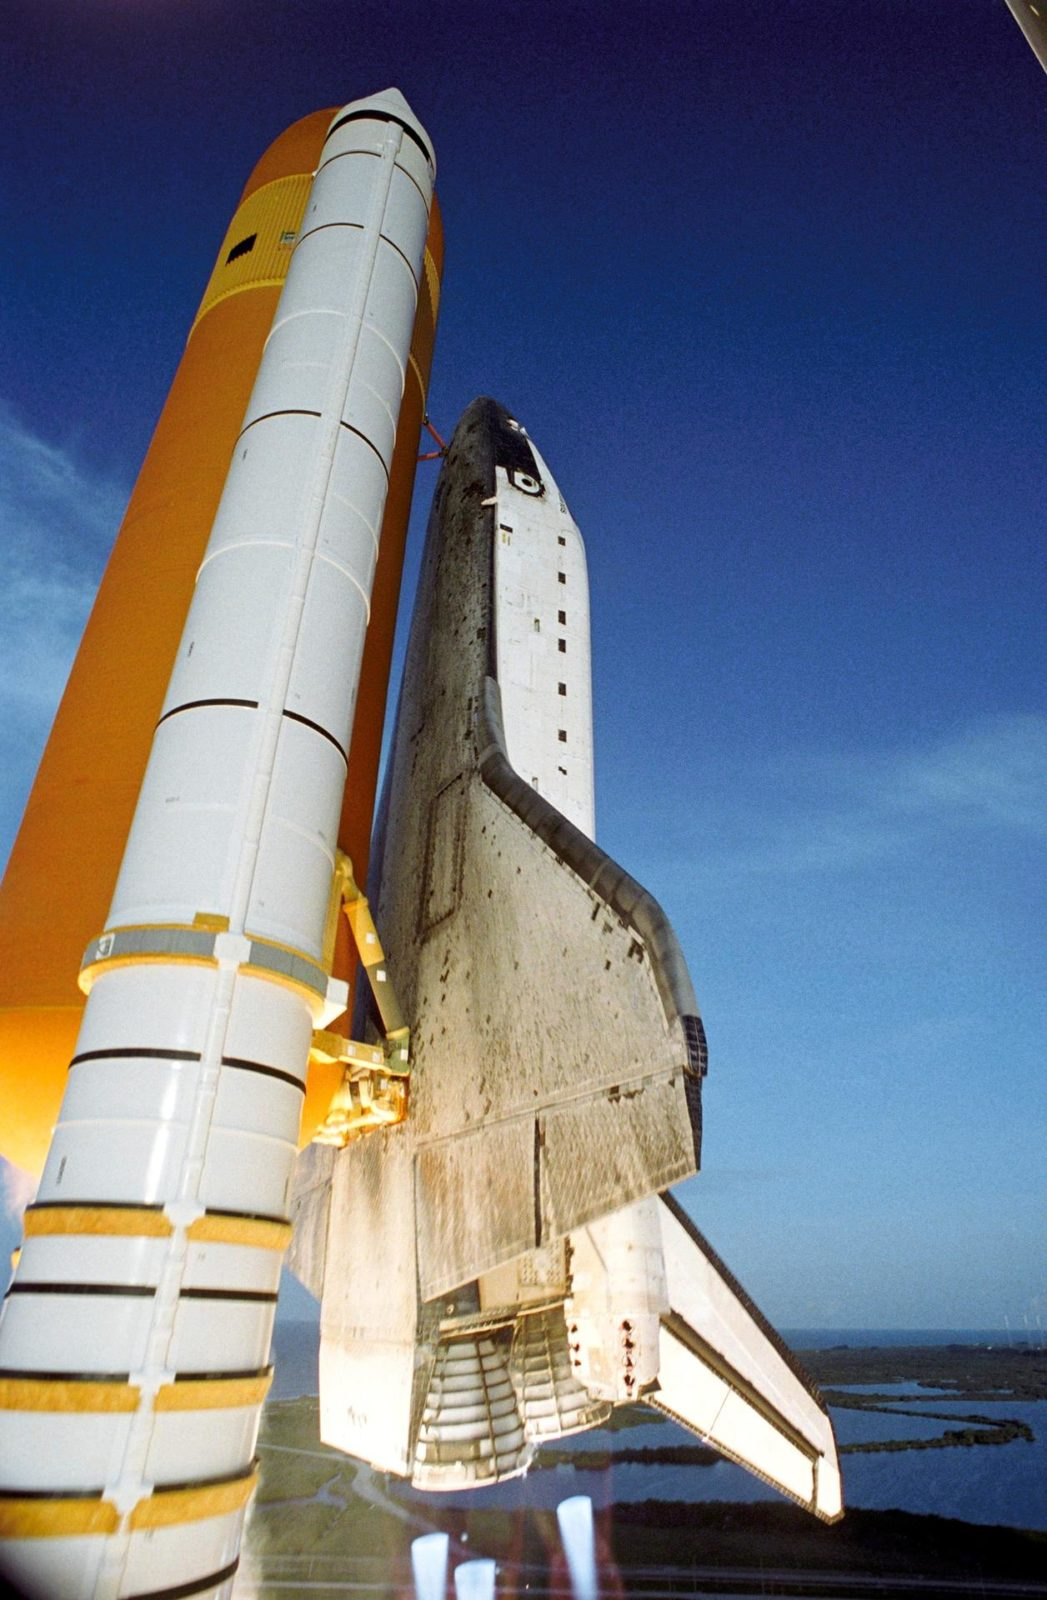 """STS117-S-038 (8 June 2007) --- The Space Shuttle Atlantis and its seven-member STS-117 crew head toward Earth-orbit and a scheduled link-up with the International Space Station. Liftoff from Kennedy Space Center's launch pad 39A occurred at 7:38 p.m. (EDT) on June 8, 2007. Onboard are astronauts Rick Sturckow, commander; Lee Archambault, pilot; Jim Reilly, Patrick Forrester, John """"Danny"""" Olivas, Steven Swanson and Clayton Anderson, all mission specialists. Anderson will join Expedition 15 in progress to serve as a flight engineer aboard the station. Atlantis will dock with the orbital outpost on Sunday, June 10, to begin a joint mission that will increase the complex's power generation capability. Using the shuttle and station robotic arms and conducting three scheduled spacewalks, the astronauts will install another set of giant solar array wings on the station and retract another array, preparing it for a future move. STS117-S-038"""